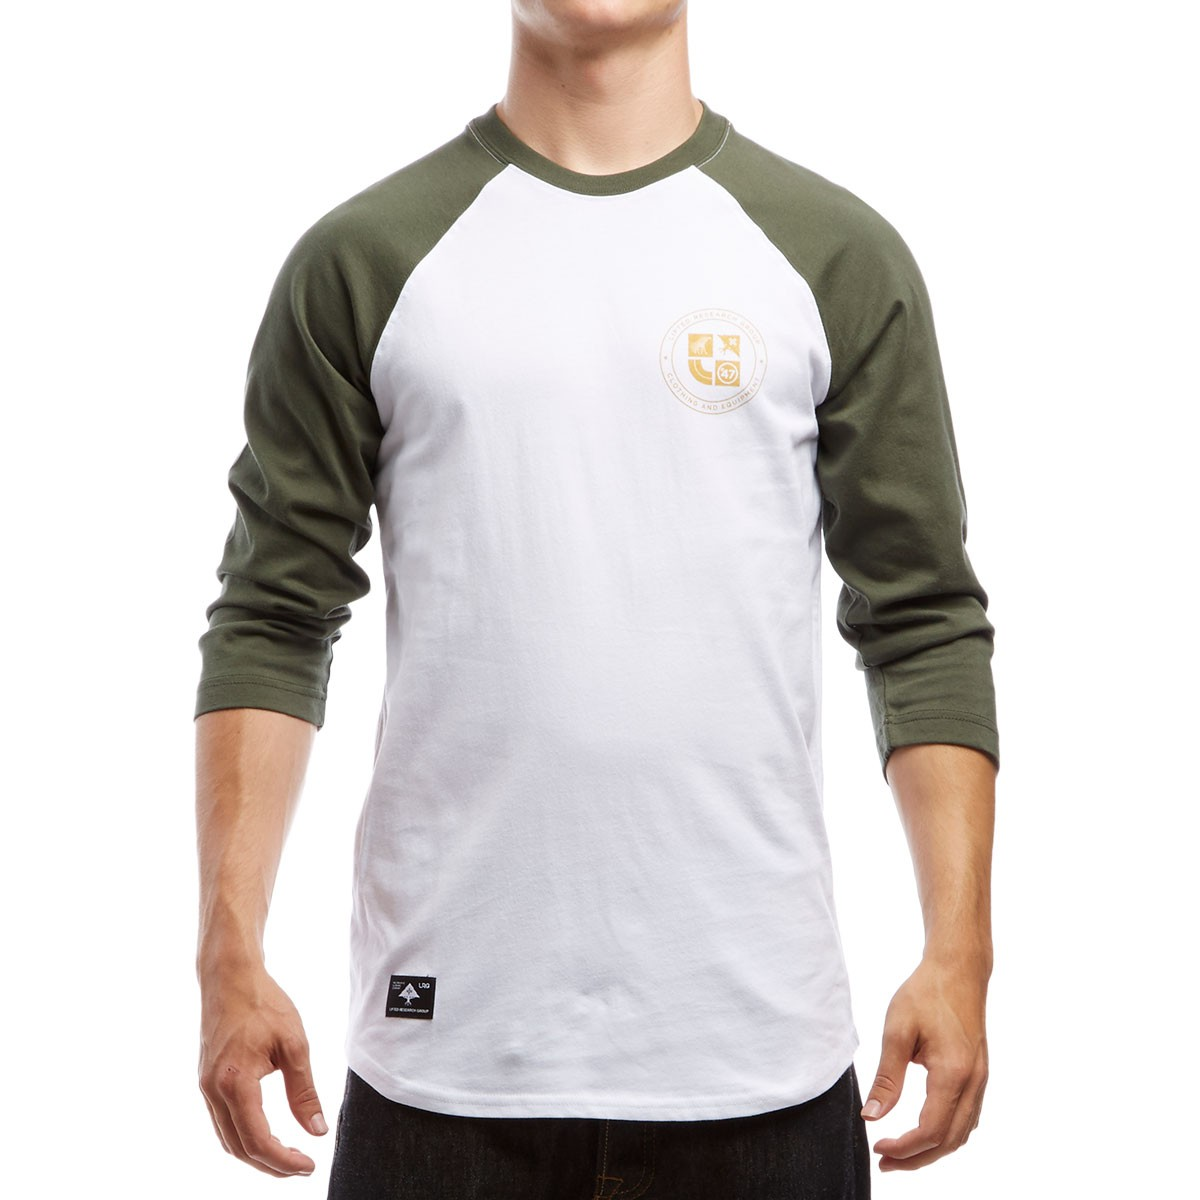 8f3b5c07cb6 LRG Clothing and Equipment 3 4 Sleeve Raglan T-Shirt - Olive Drab